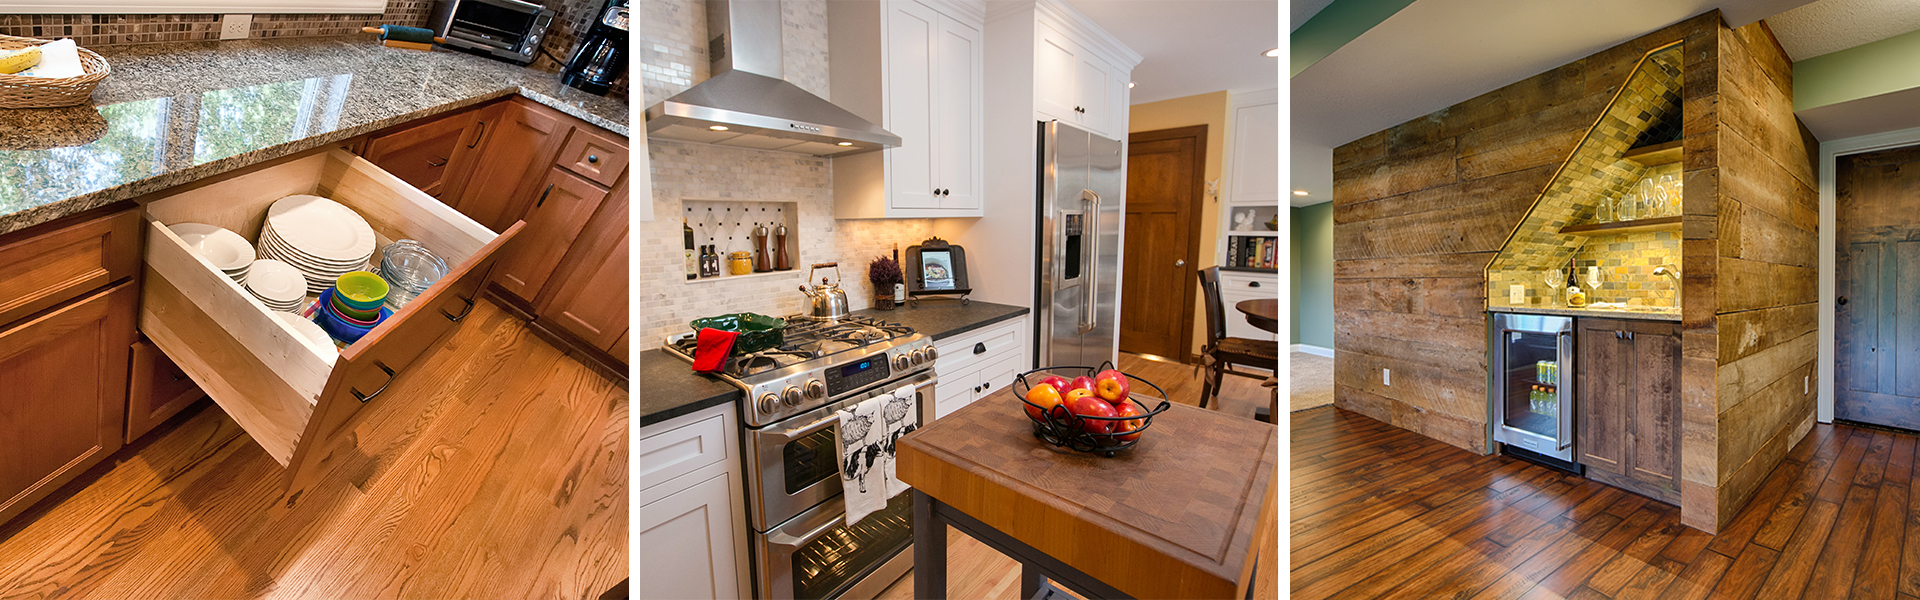 Custom Cabinets and Luxurious Kitchen Design in a Home